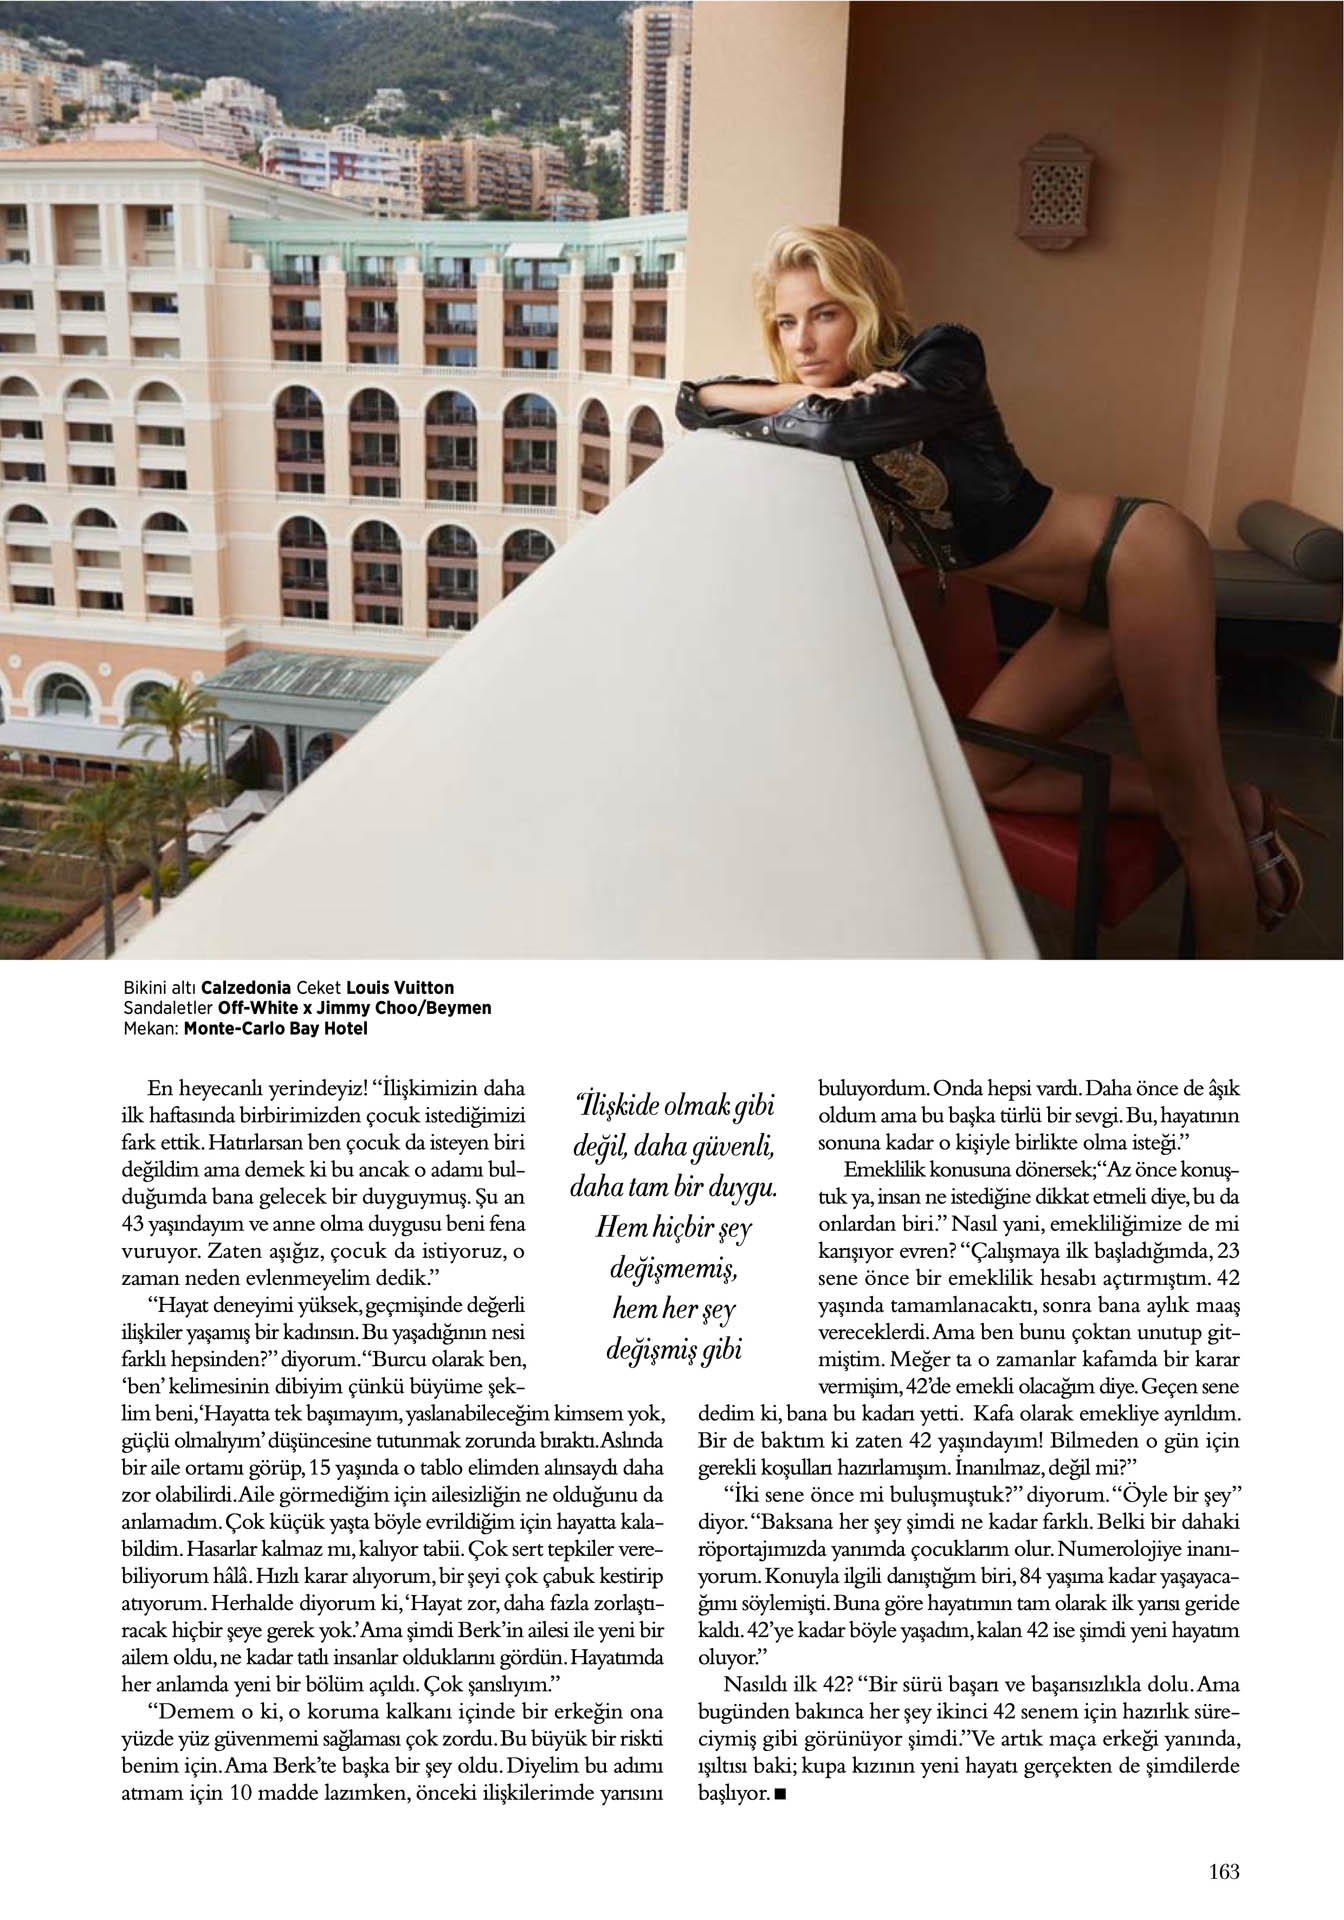 Harpers Bazaar Turkey page 146 to 164 - June 2018 144-18